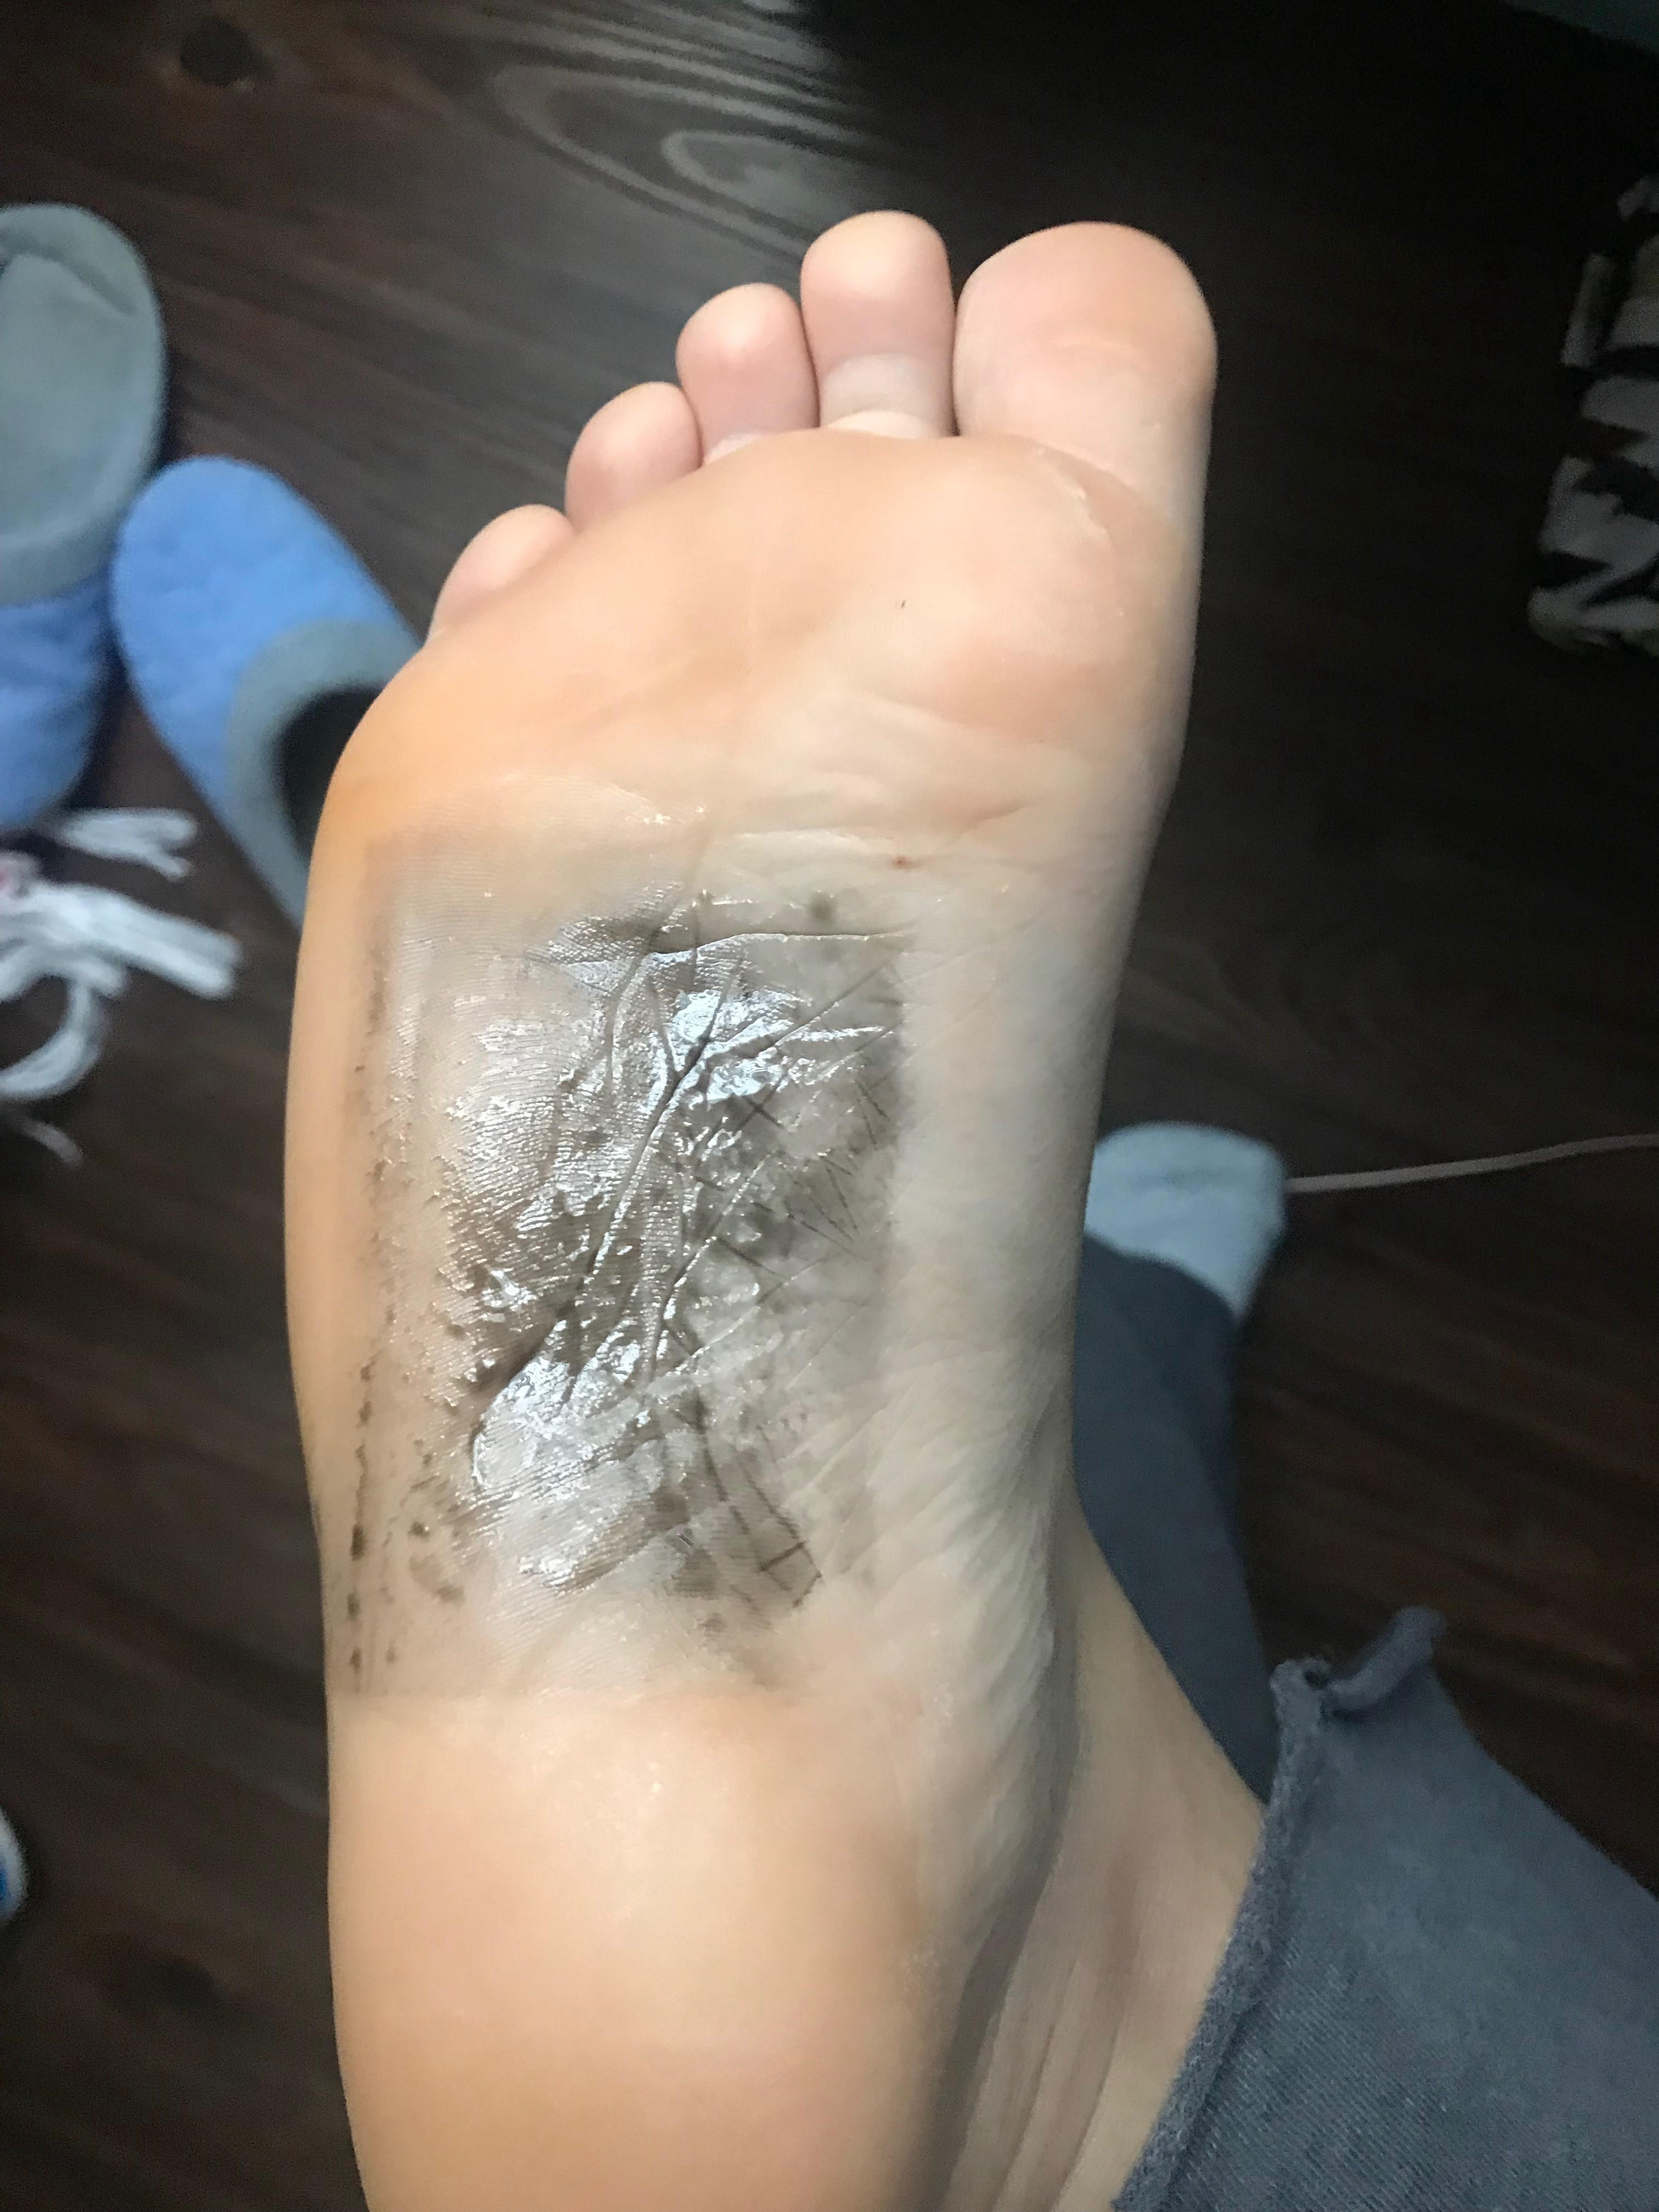 Detox Foot Pads A Dark Cleanse I Don T Consider Myself A Healthy By Shelby Clark Medium